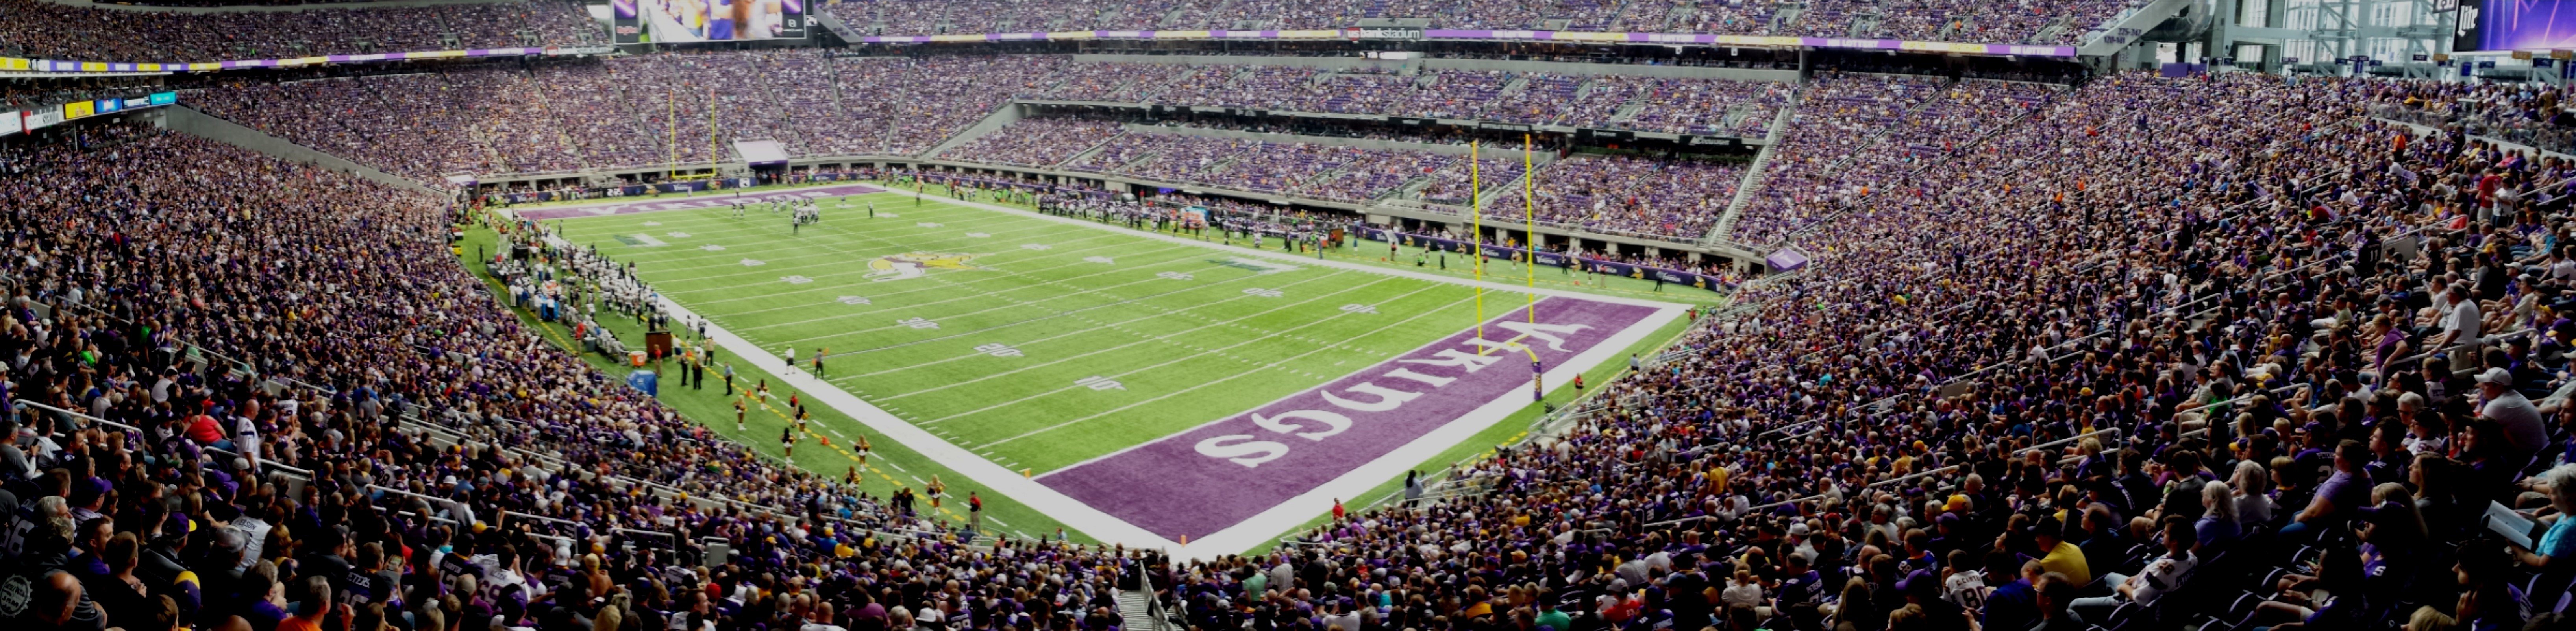 Minnesota Vikings U.S. Bank Stadium First Game - Panoramic